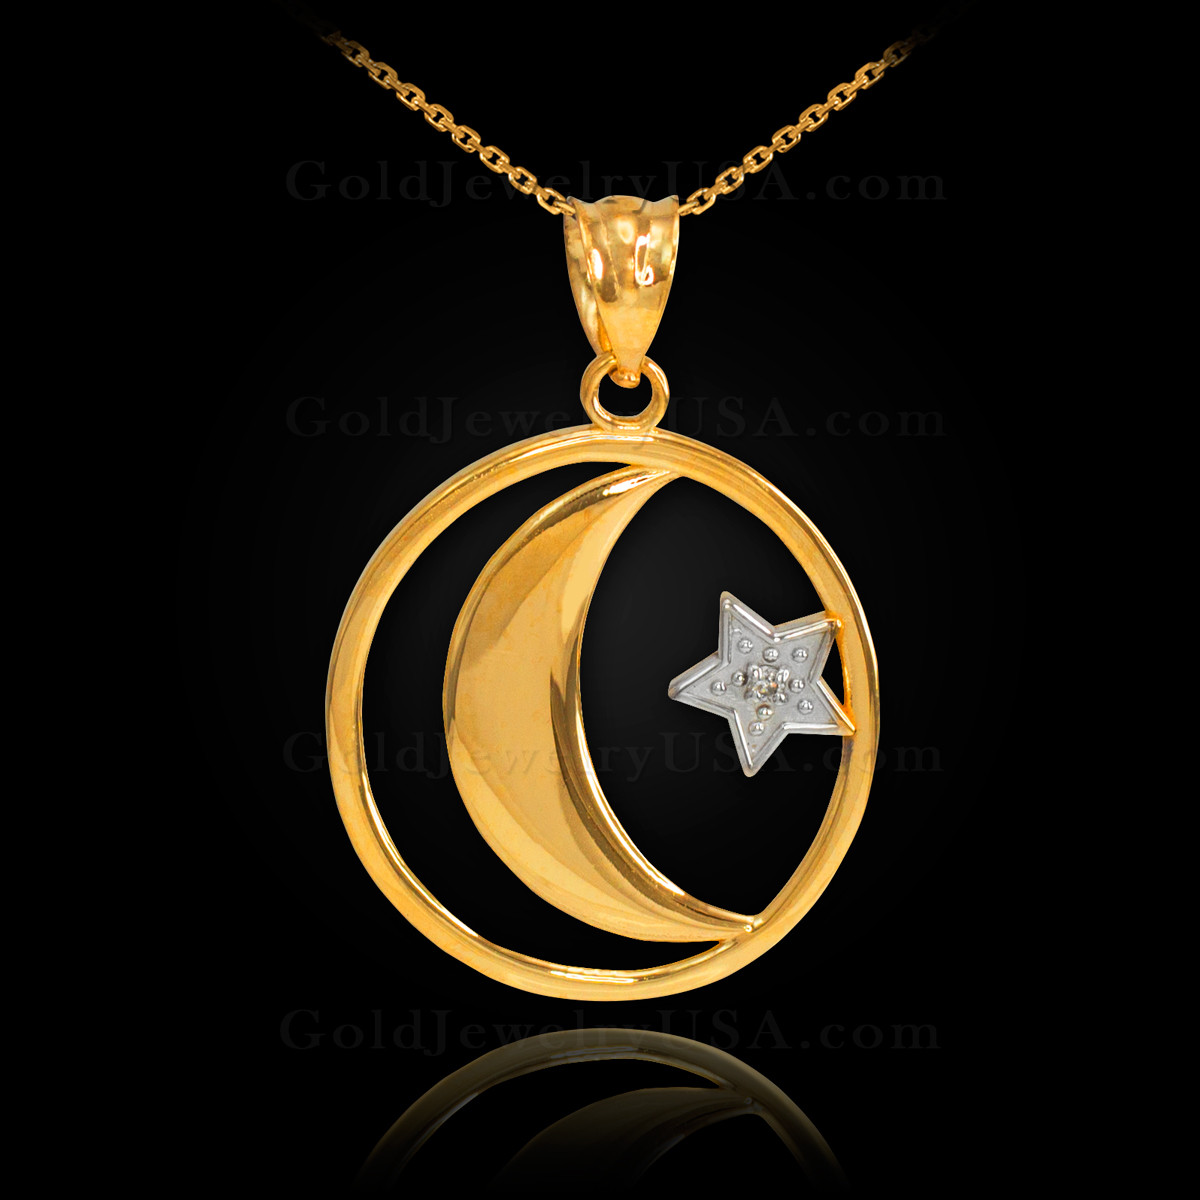 Gold crescent moon with diamond star islamic pendant necklace aloadofball Images